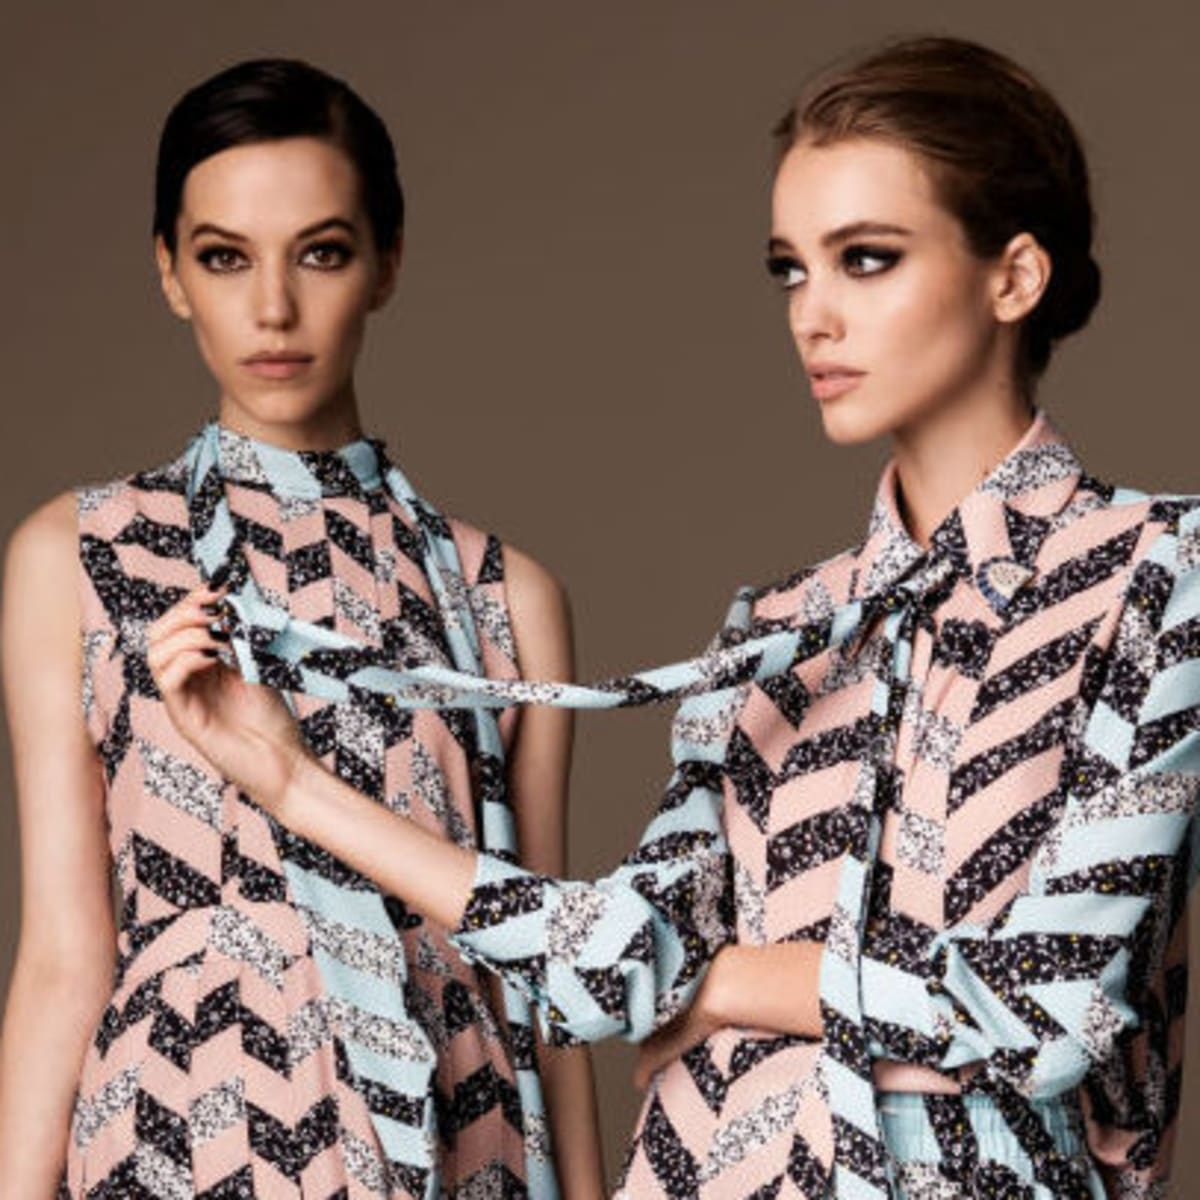 Olivia Palermo S Long Awaited Clothing Line Is Finally Here Fashionista